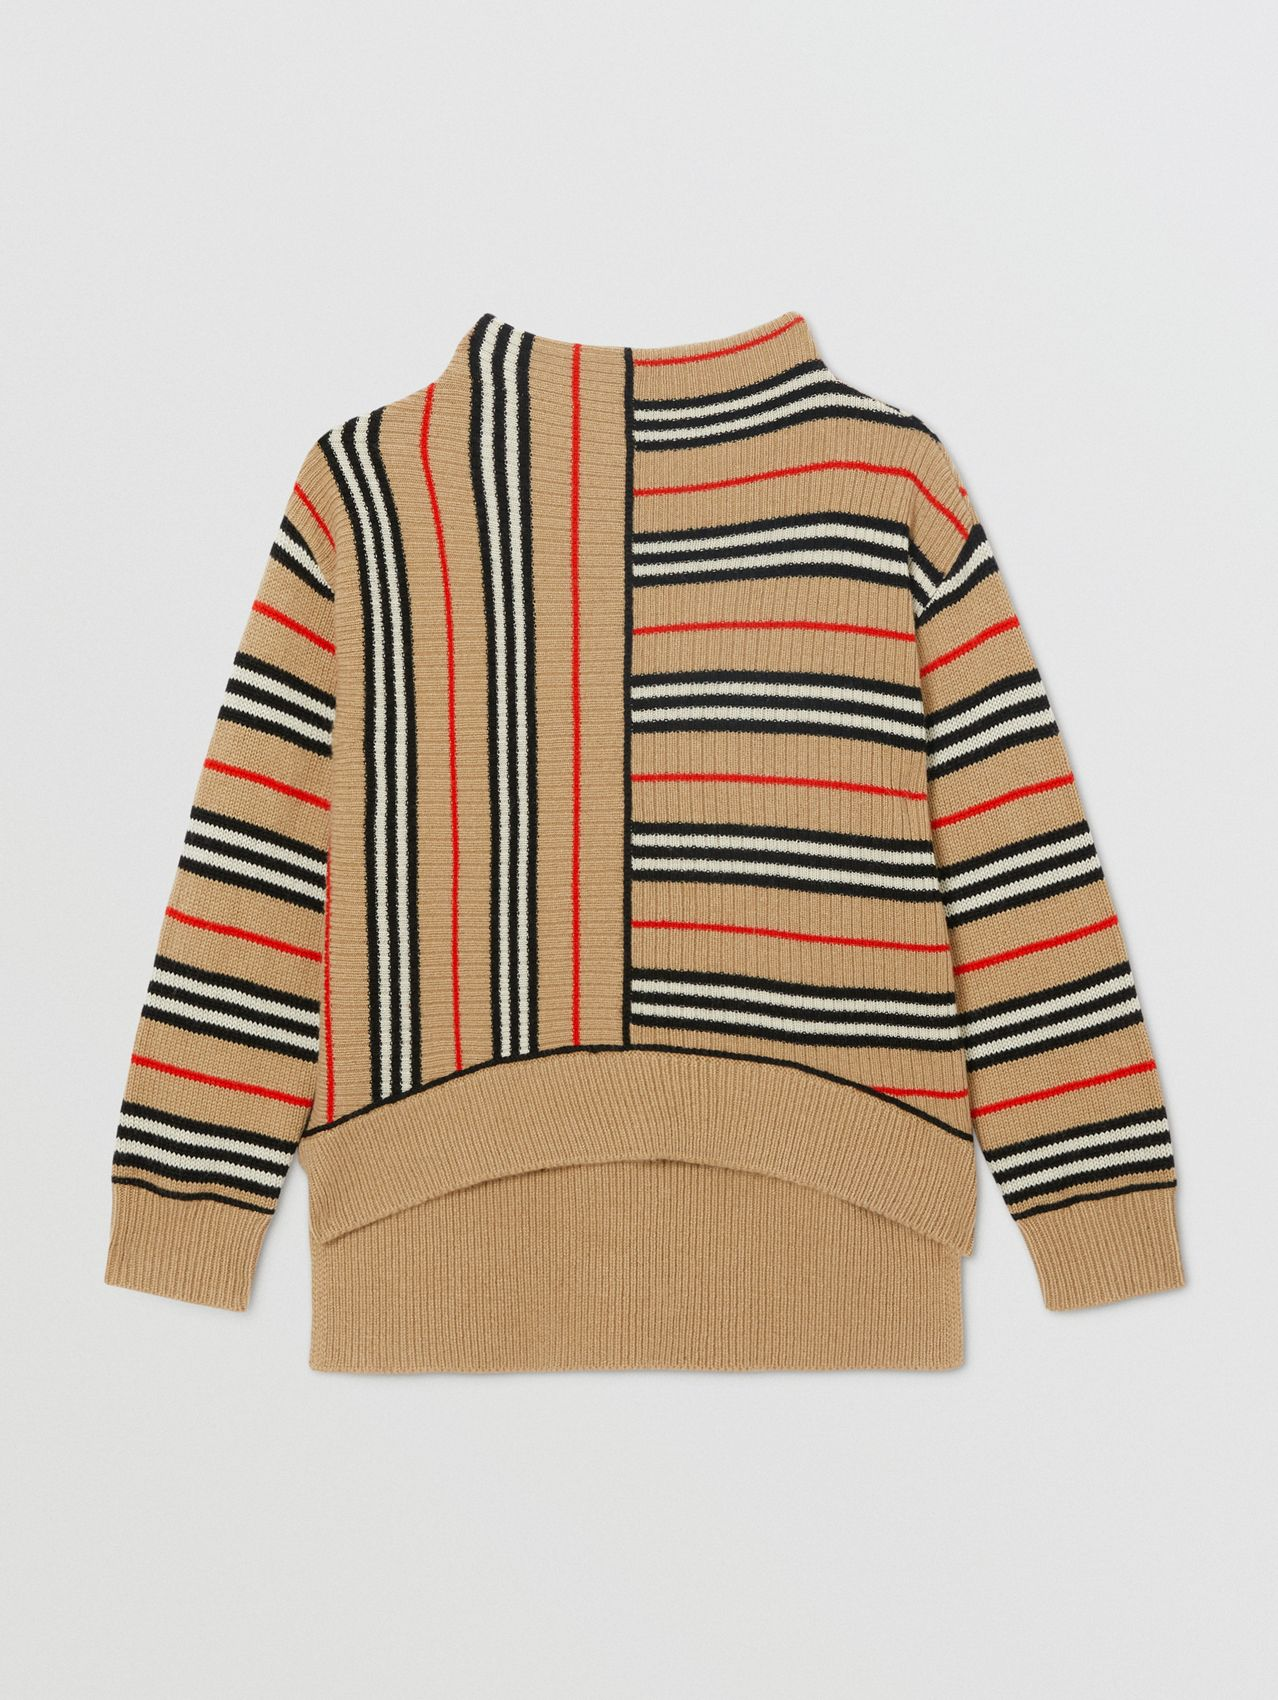 Contrast Icon Stripe Cashmere Wool Sweater in Archive Beige